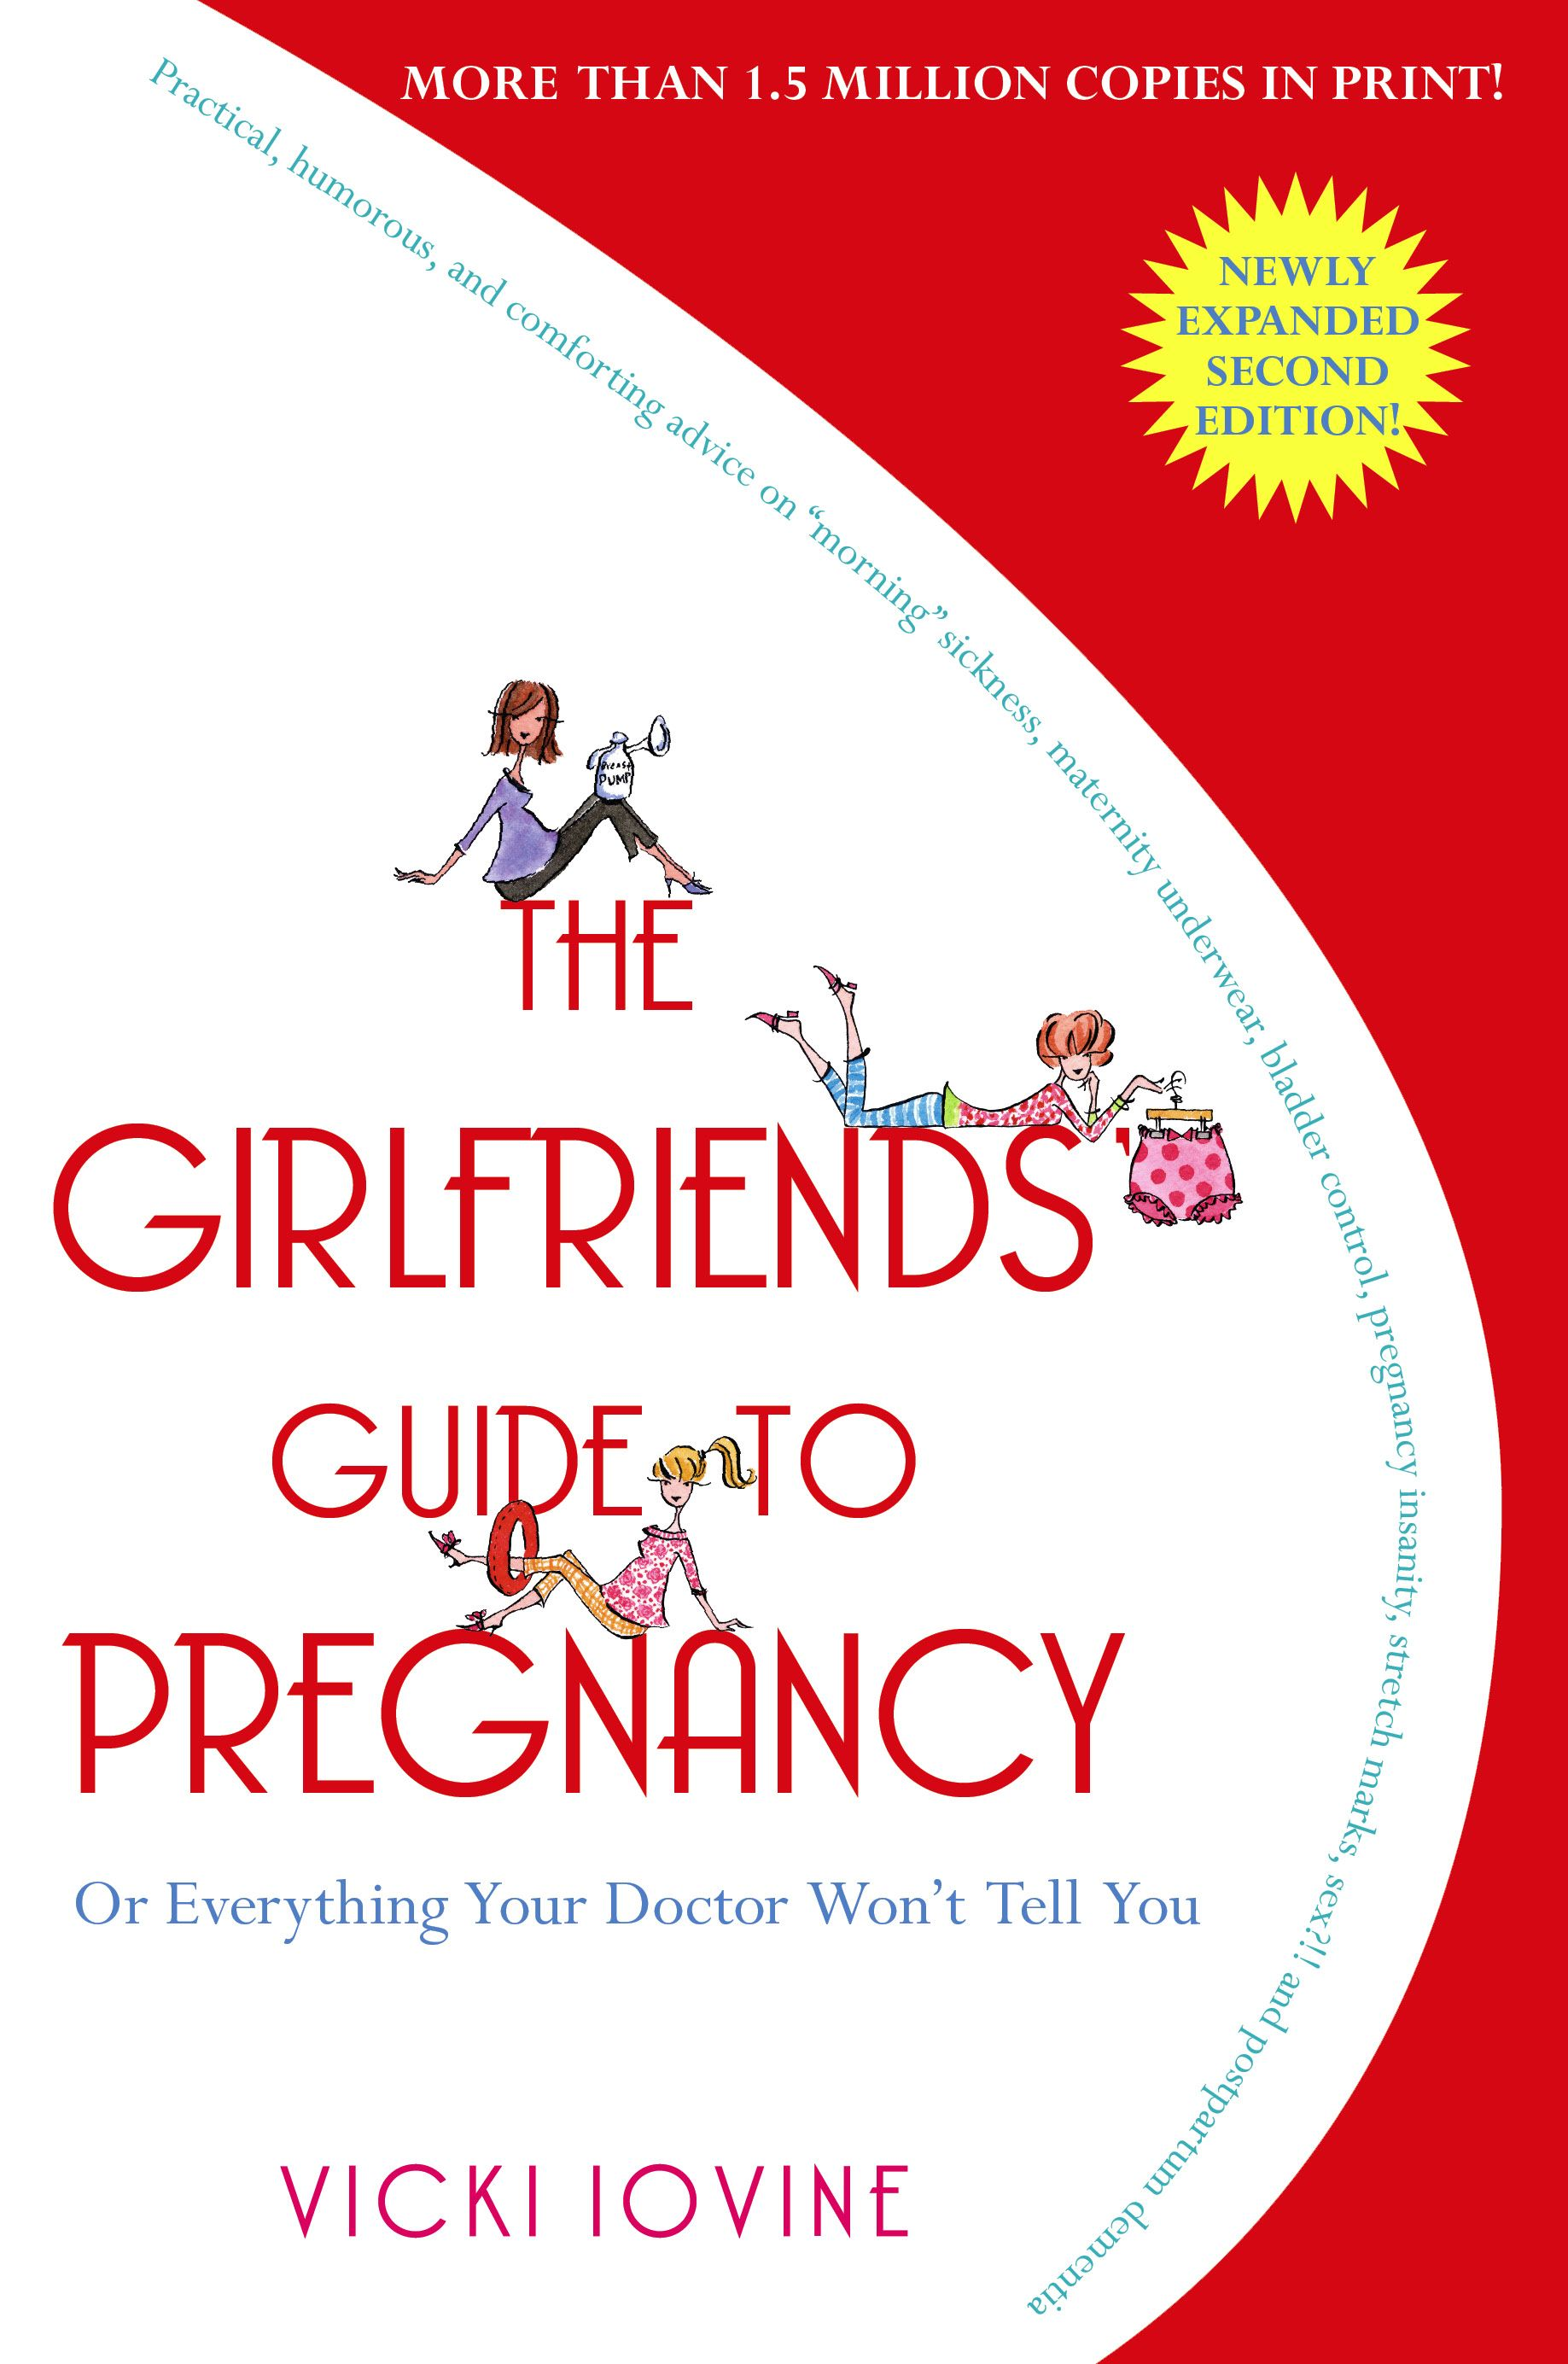 The girlfriends guide to pregnancy 9781416524724 hr